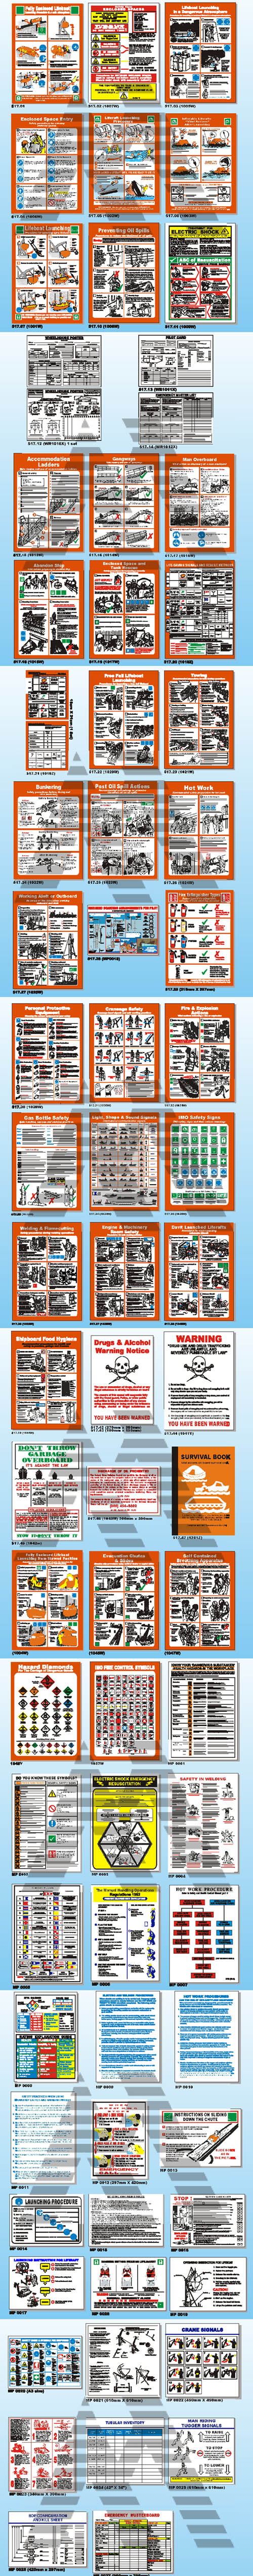 Marine & Safety Posters